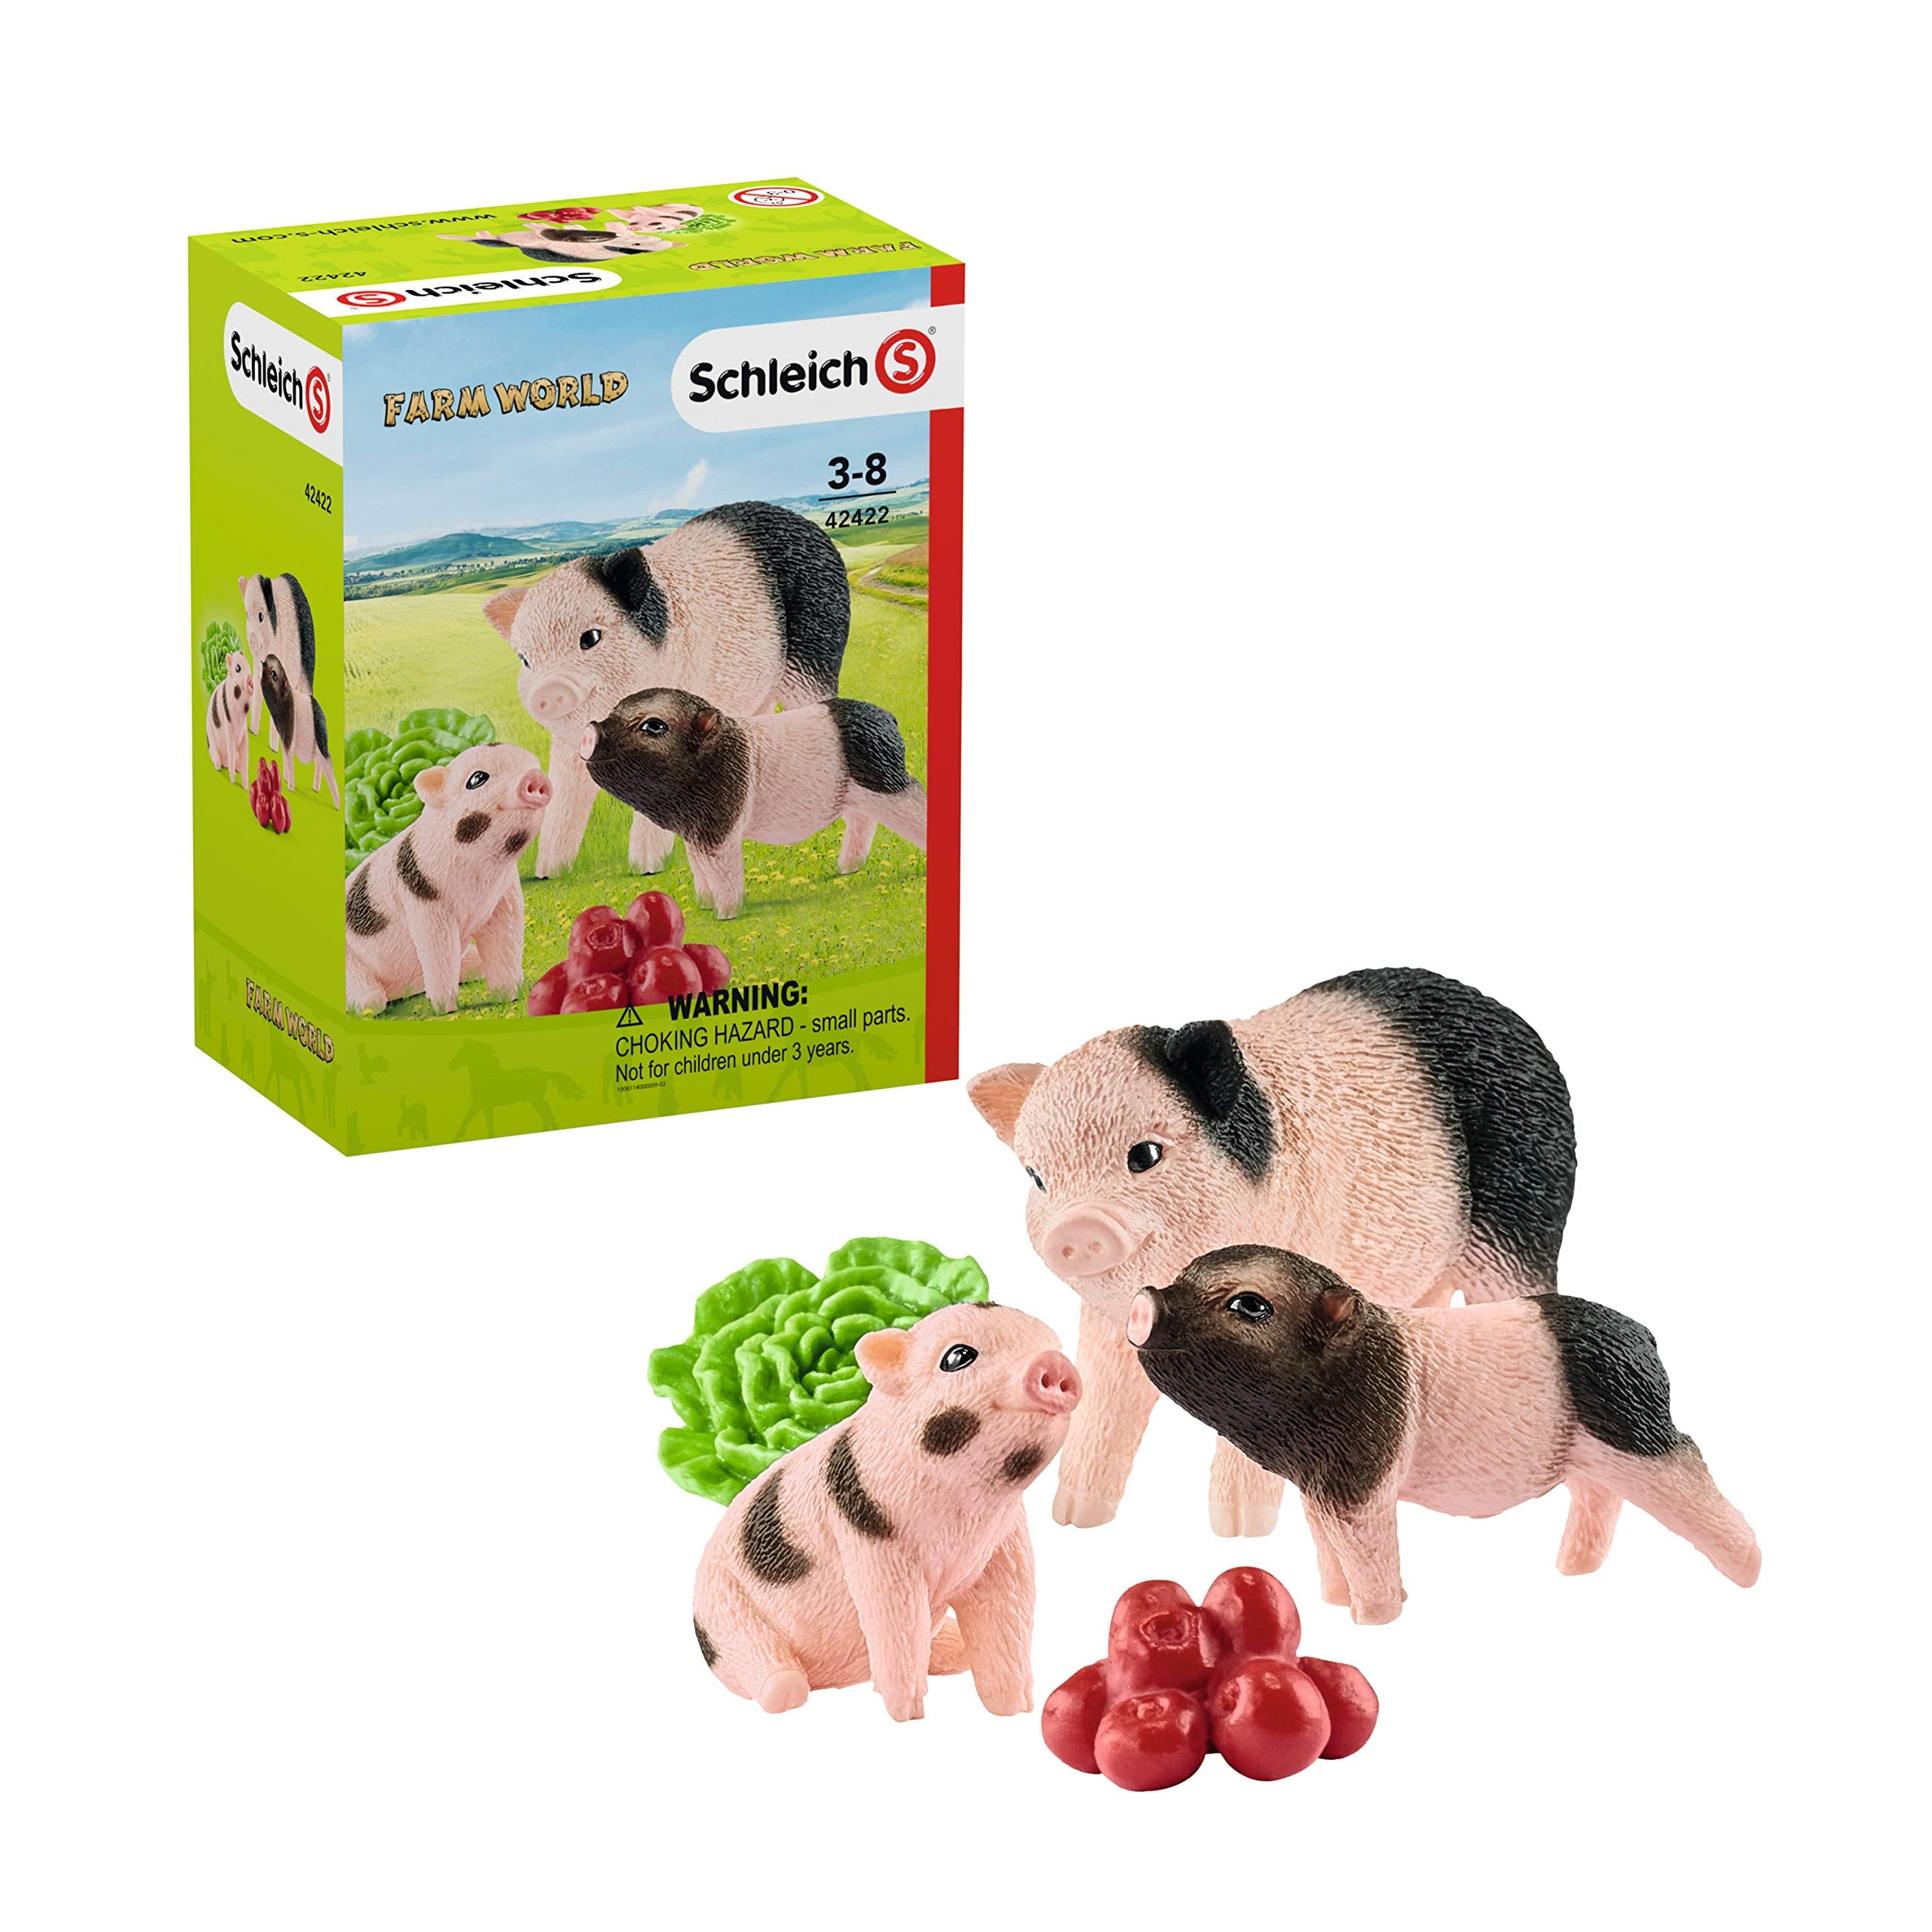 Schleich Miniature Pigs Mother with piglet Playset 42422